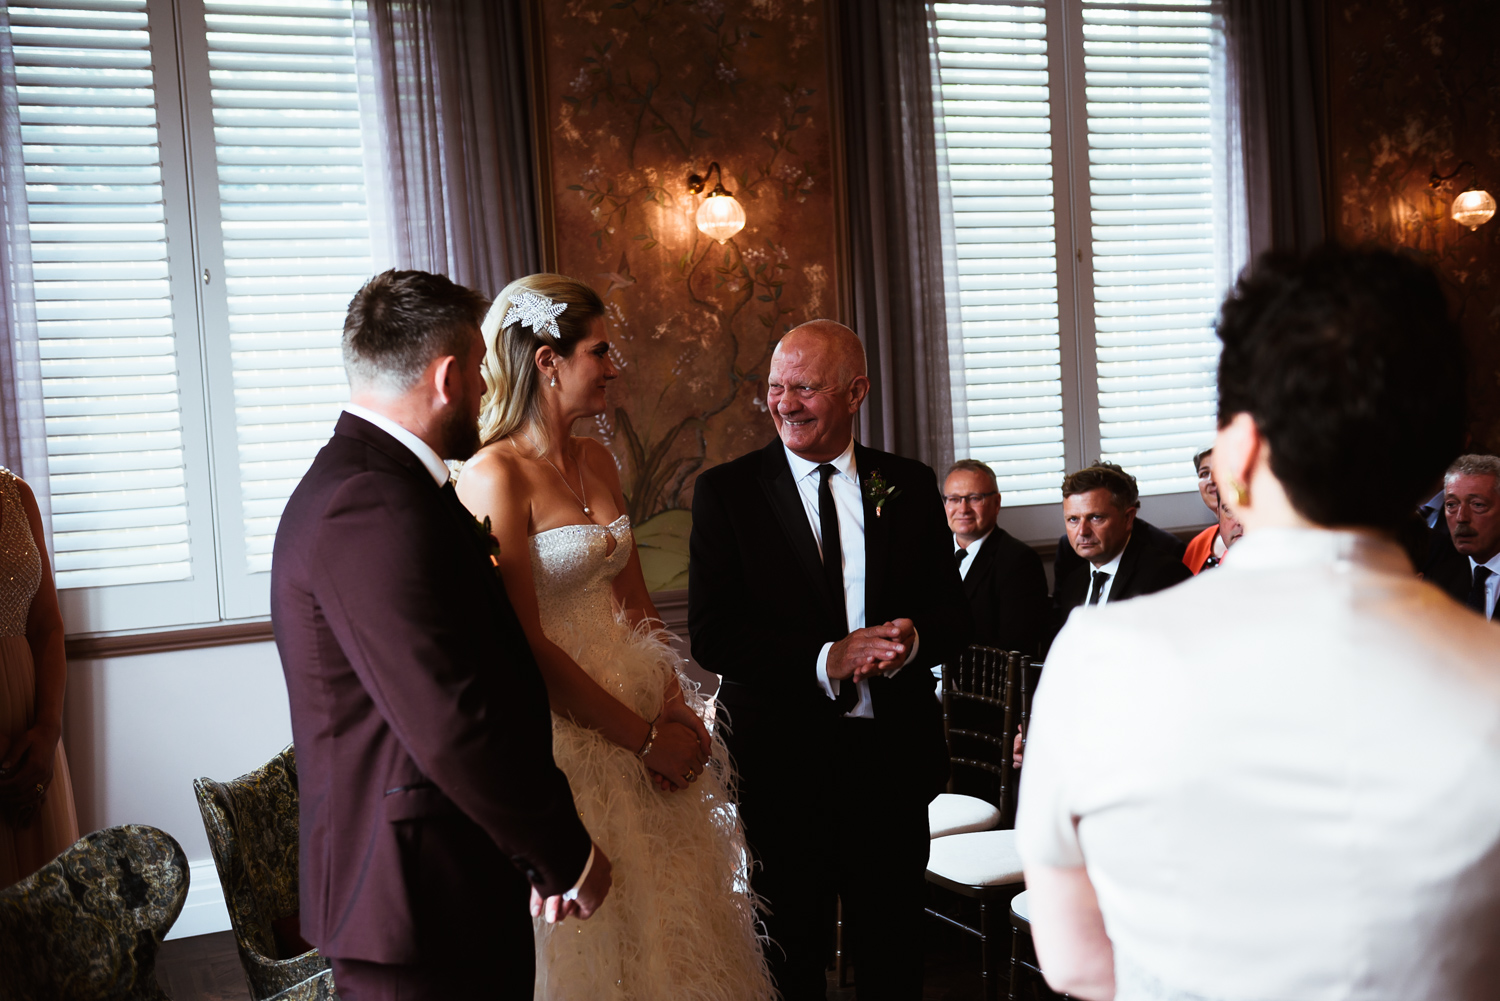 Tearful father of the bride